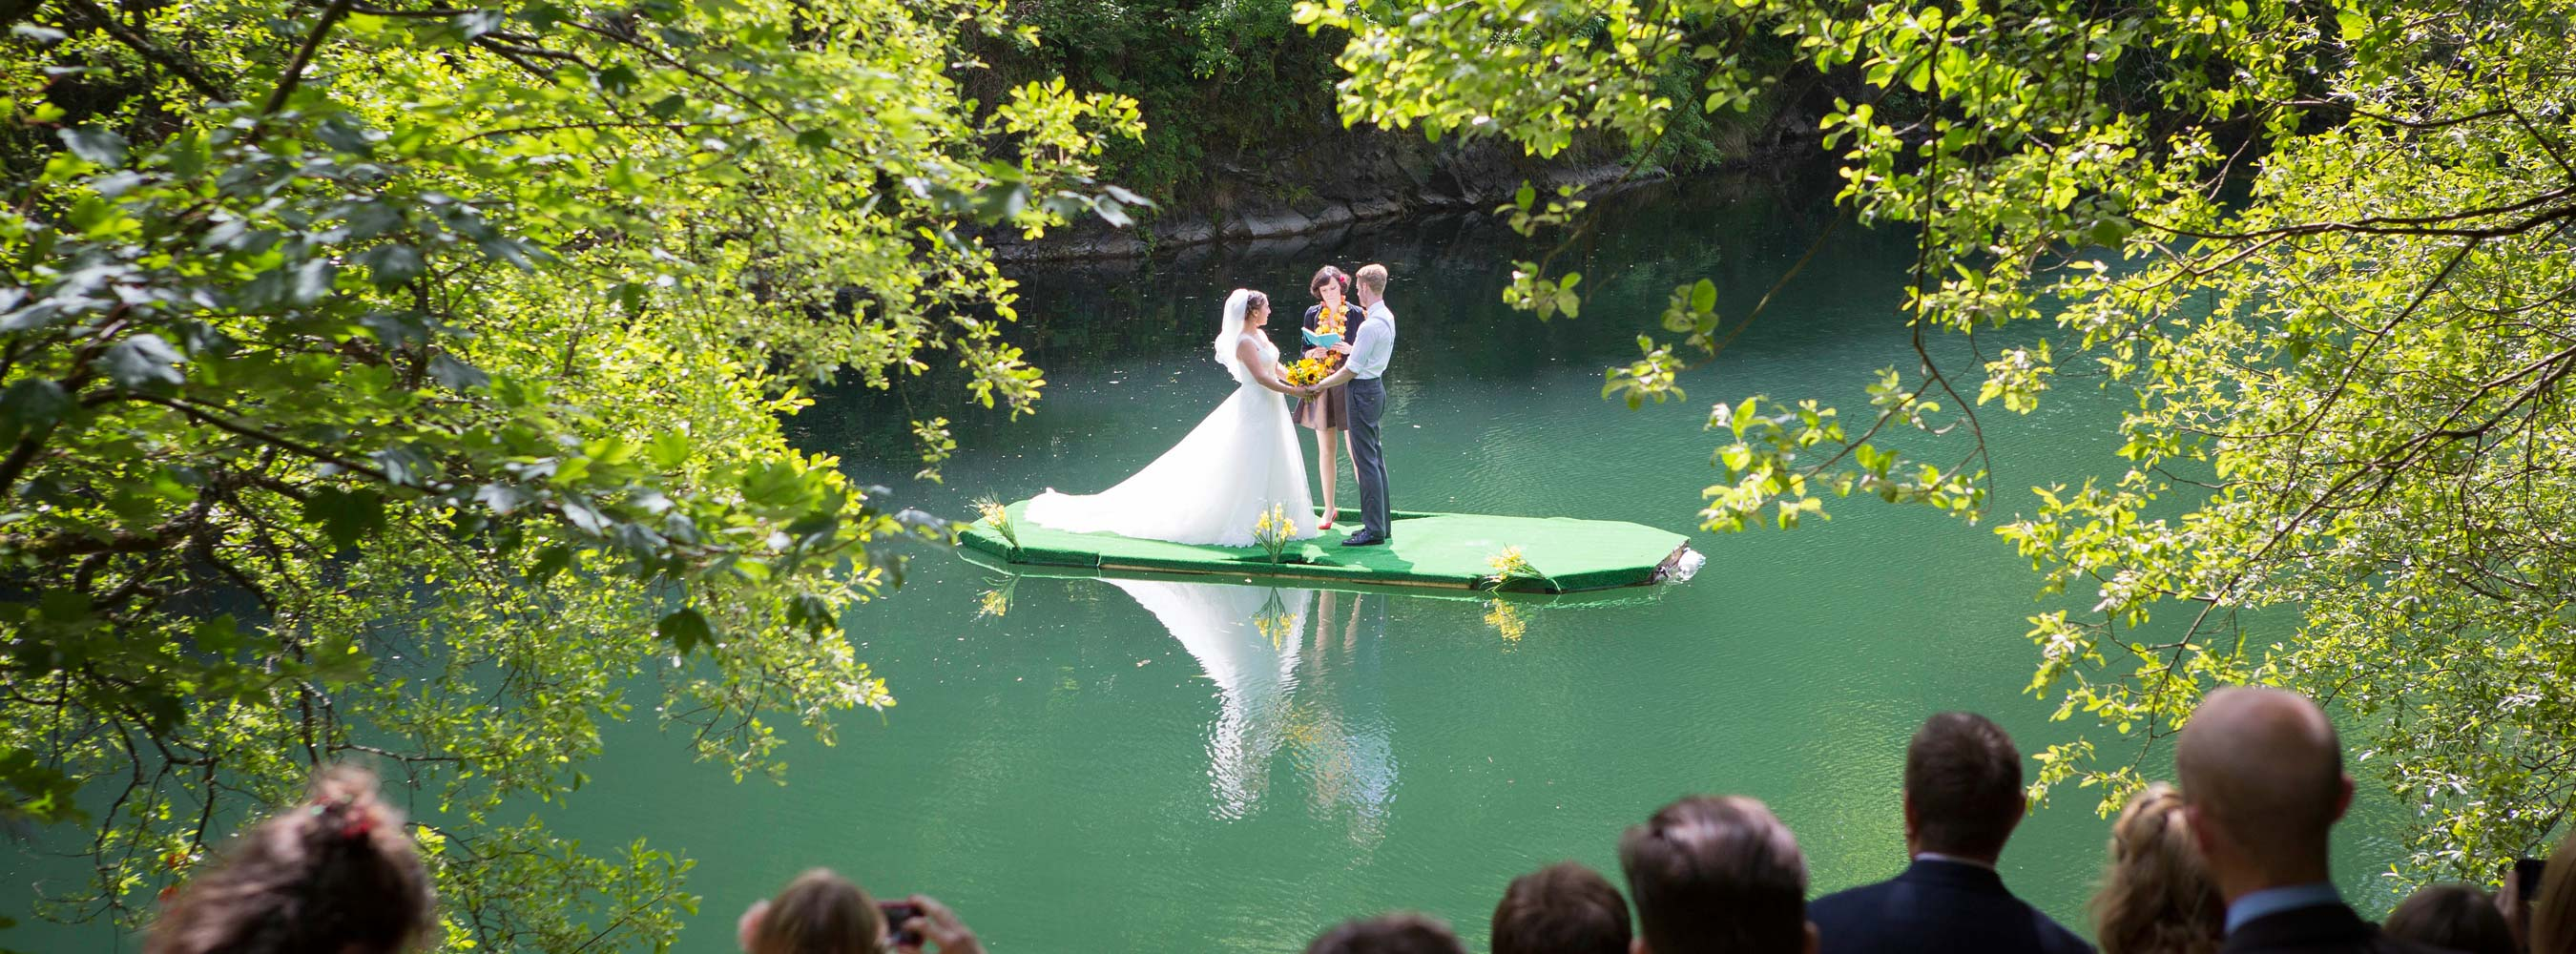 Floating Lake Wedding